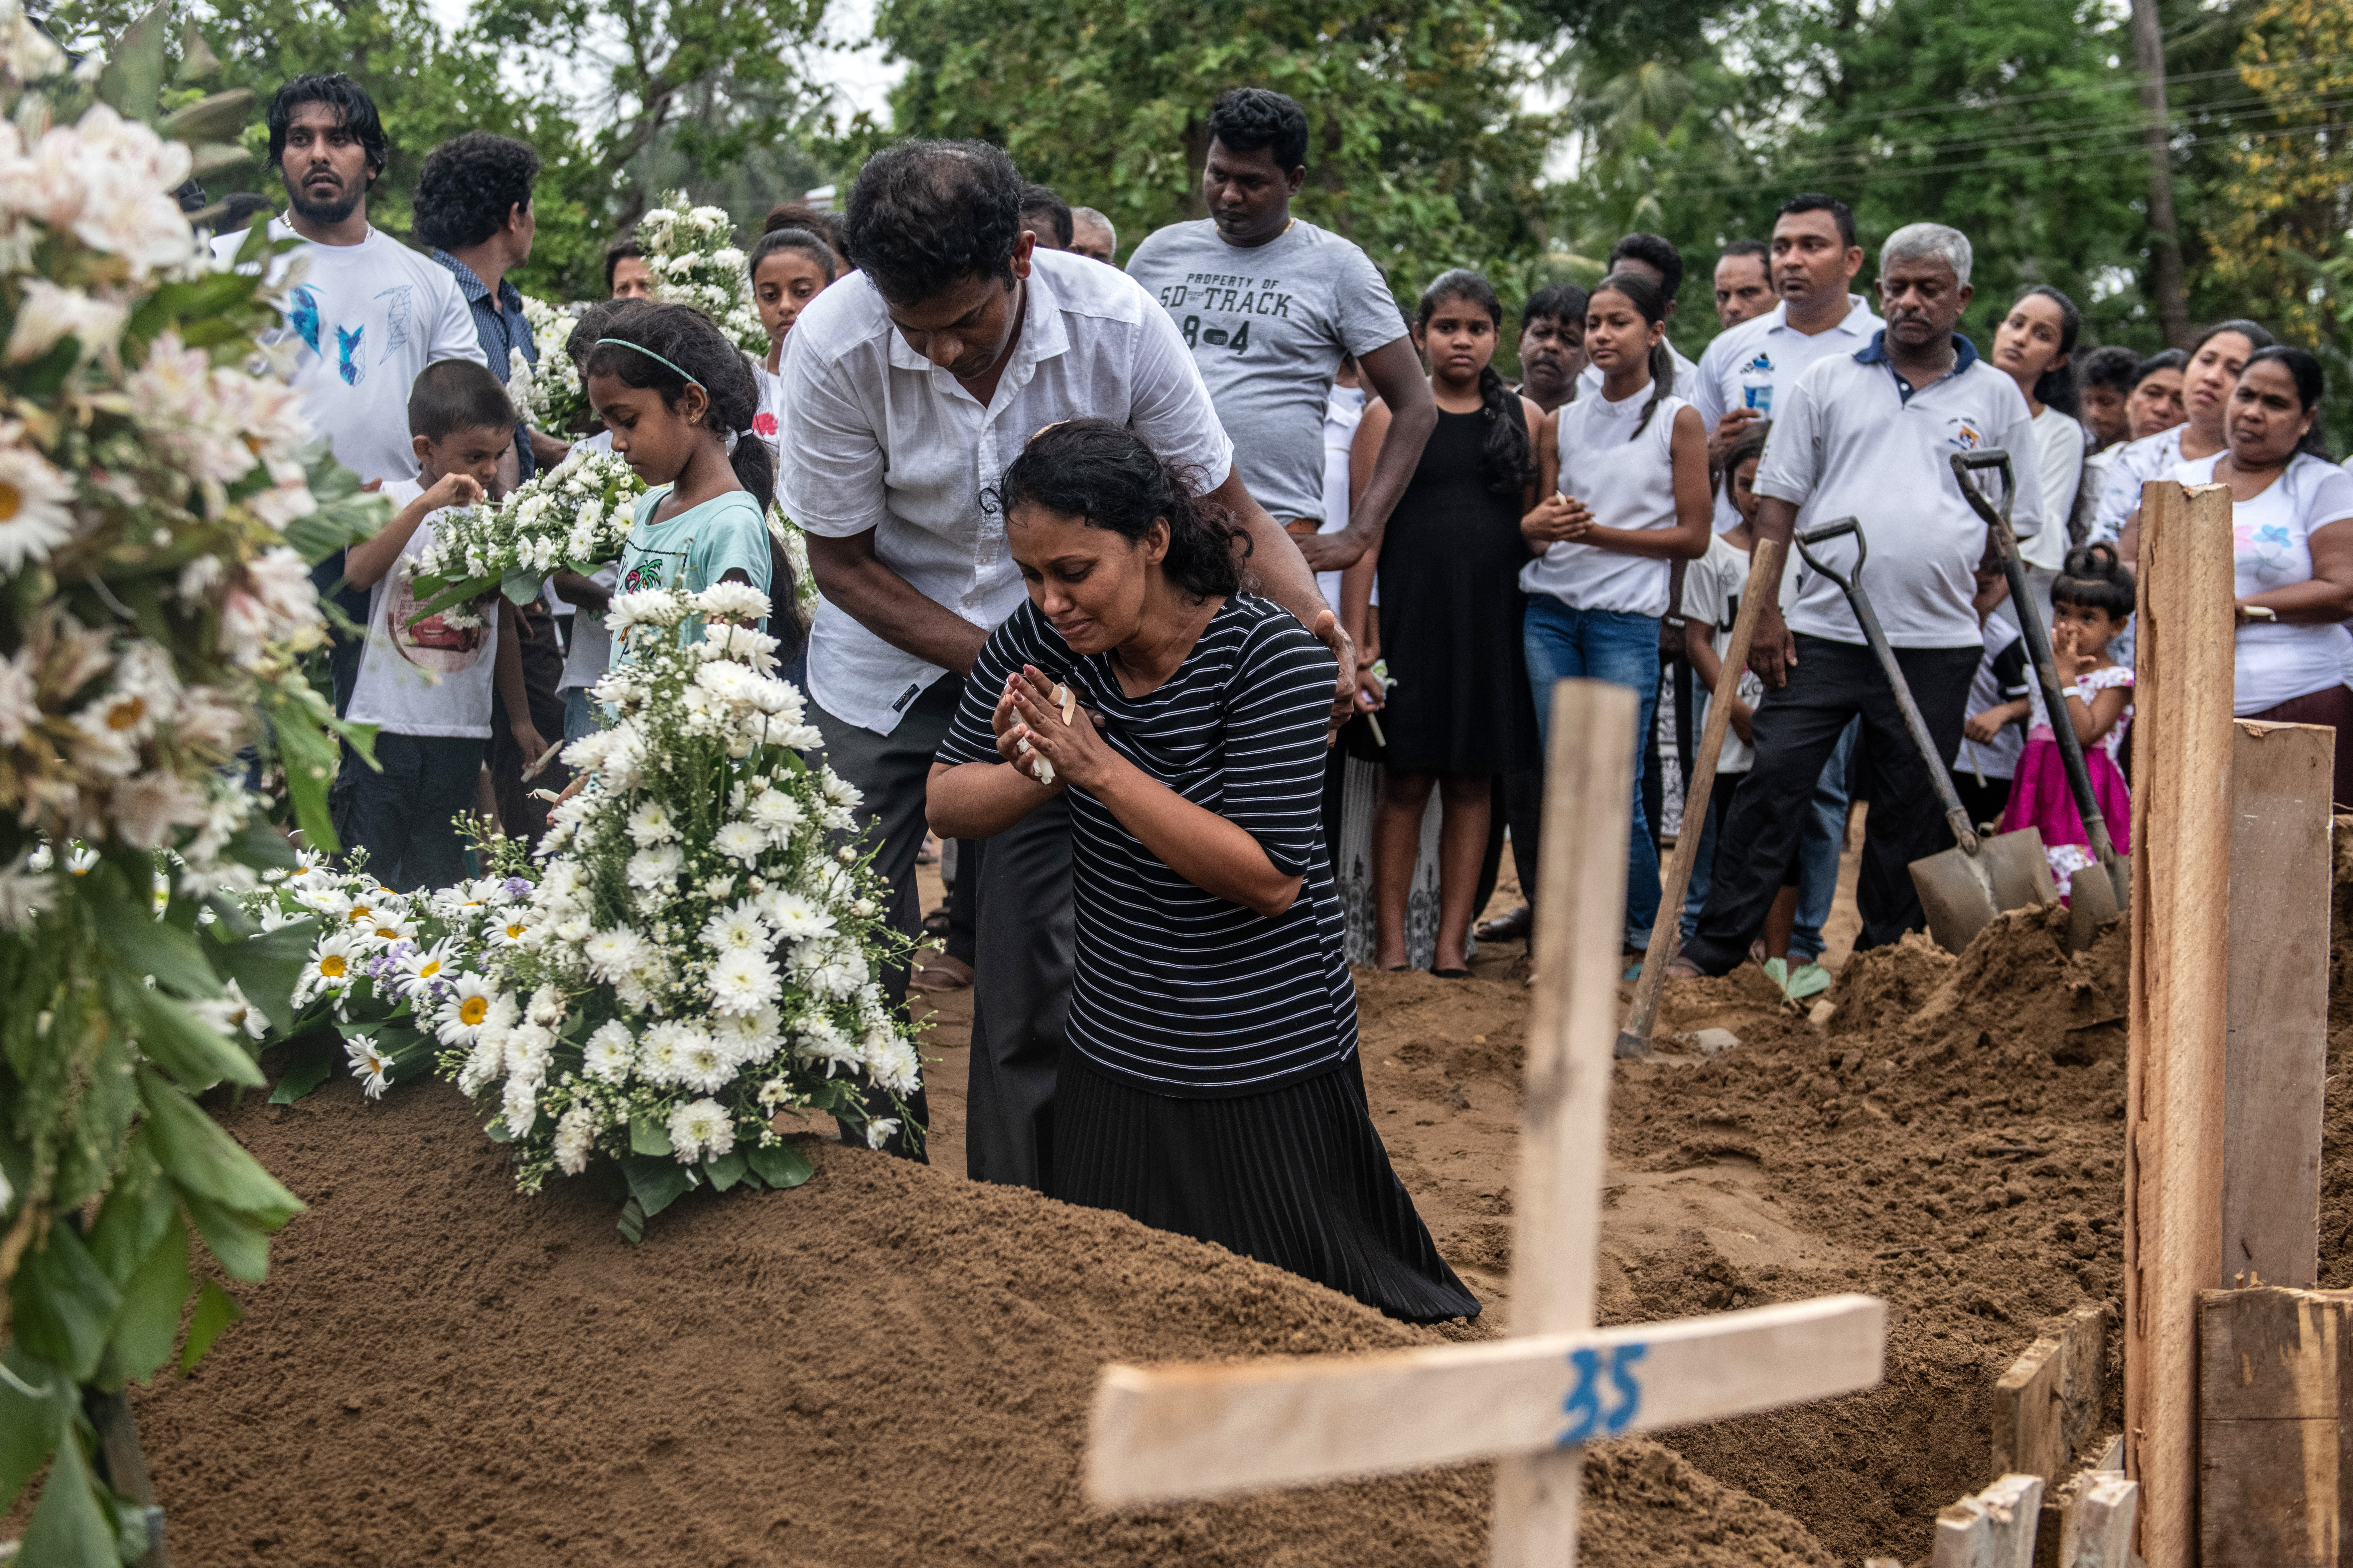 NEGOMBO, SRI LANKA - APRIL 25: A woman grieves at the grave after a funeral for a person killed in the Easter Sunday attack on St Sebastian's Church, on April 25, 2019 in Negombo, Sri Lanka. (Photo by Carl Court/Getty Images)